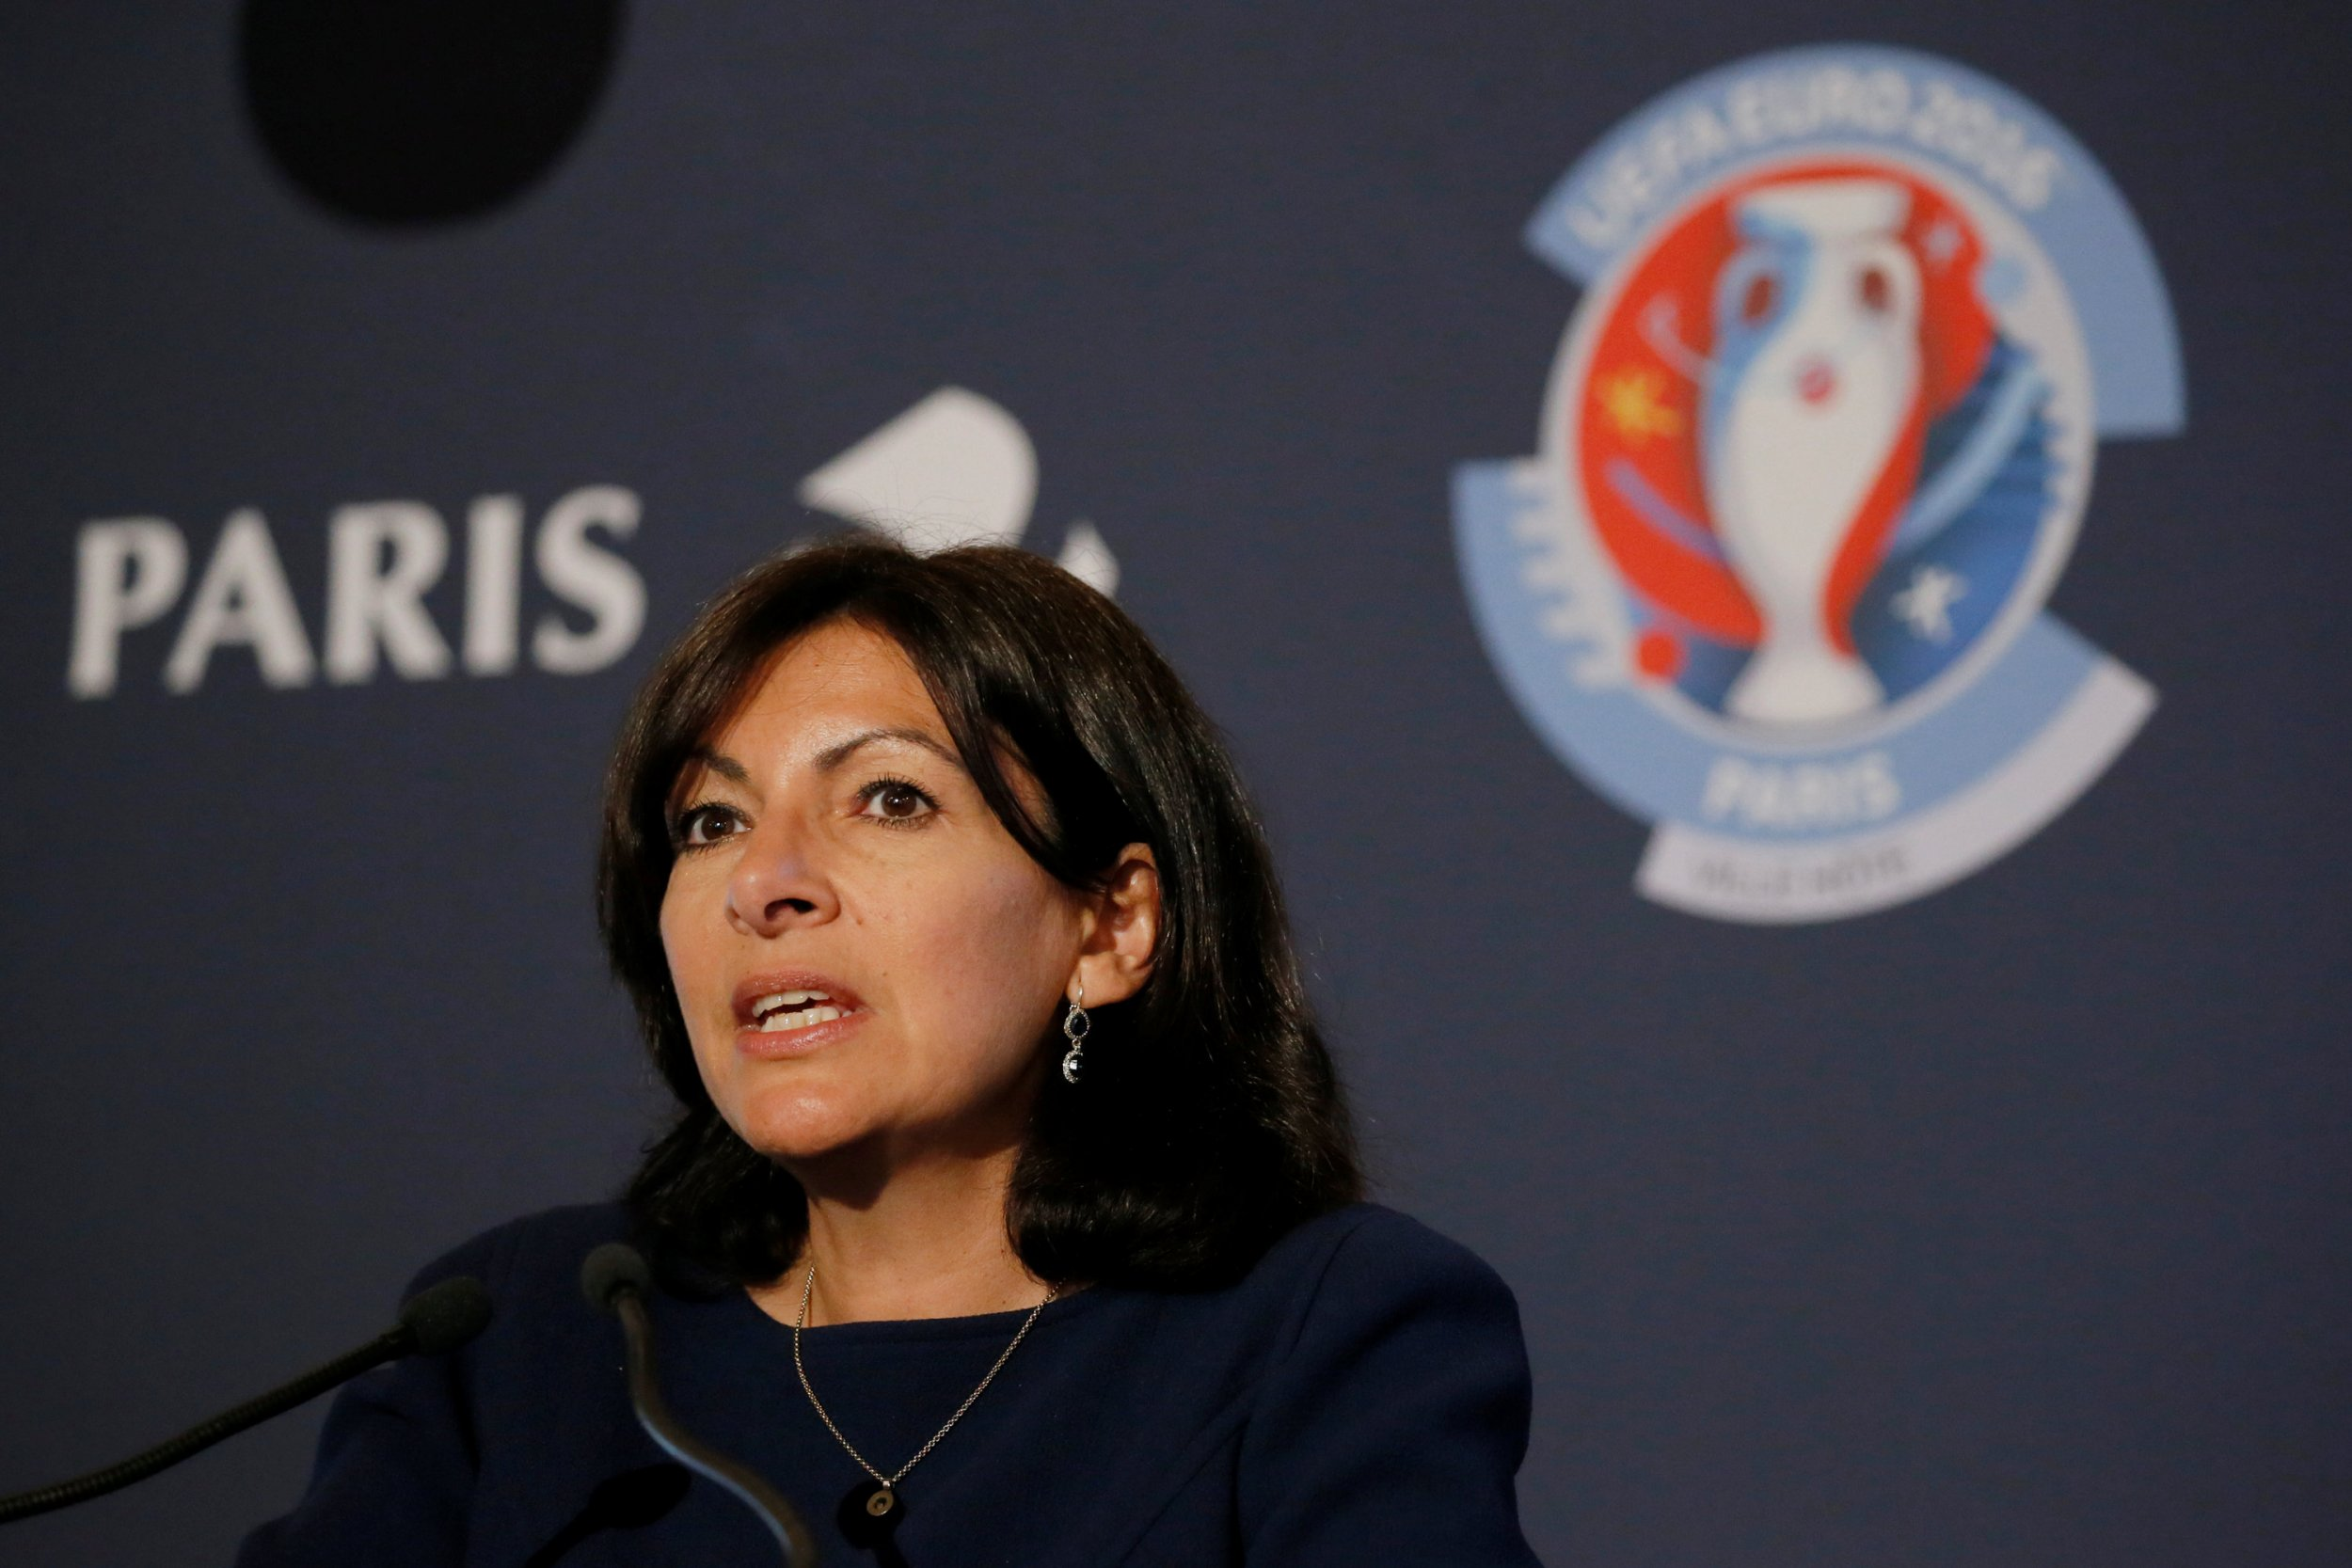 Paris mayor Anne Hidalgo